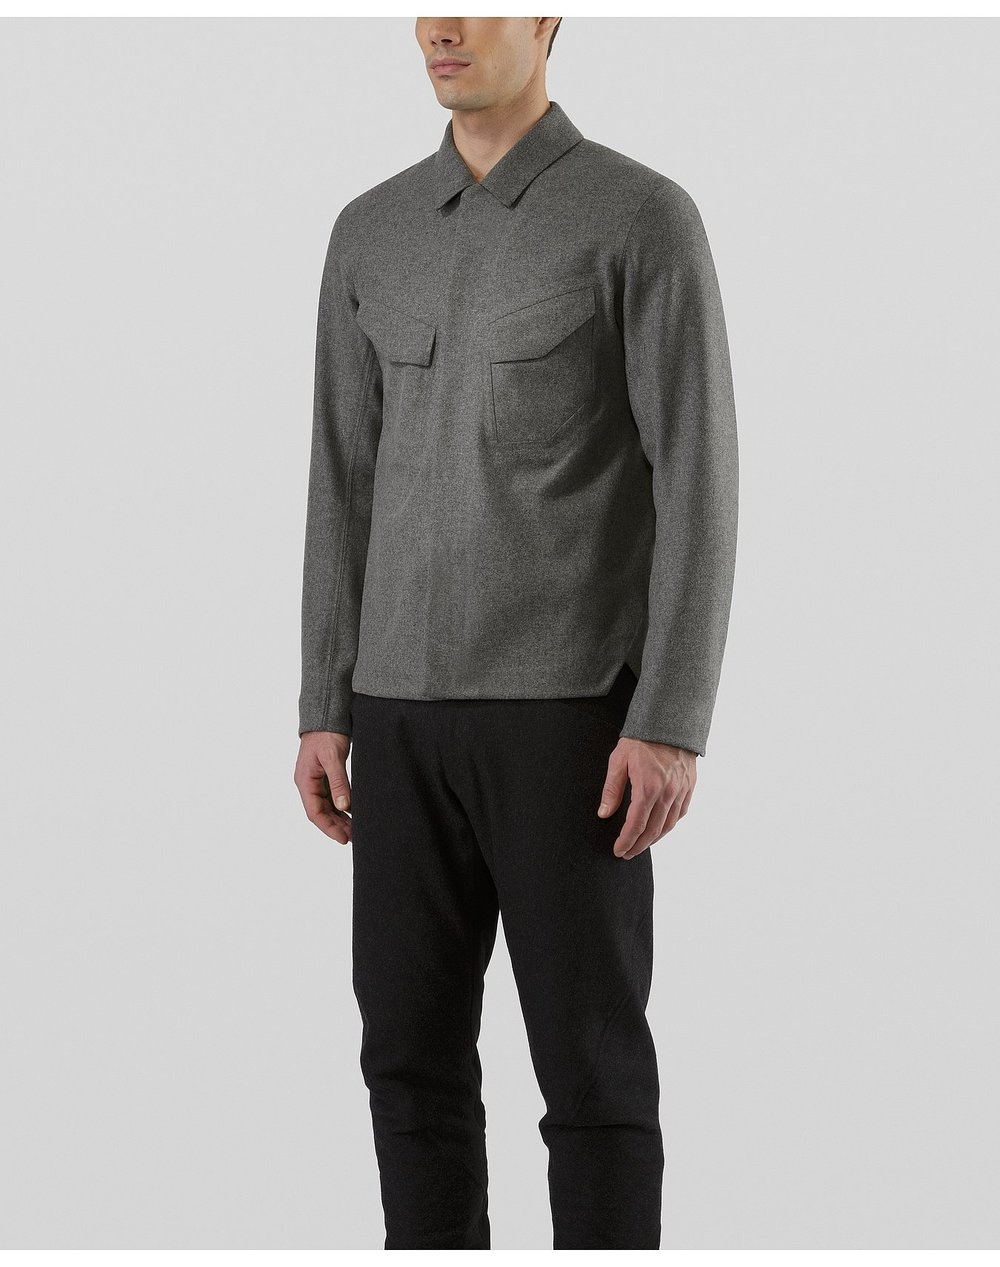 Haedn-Overshirt-Ash-Heather.jpg